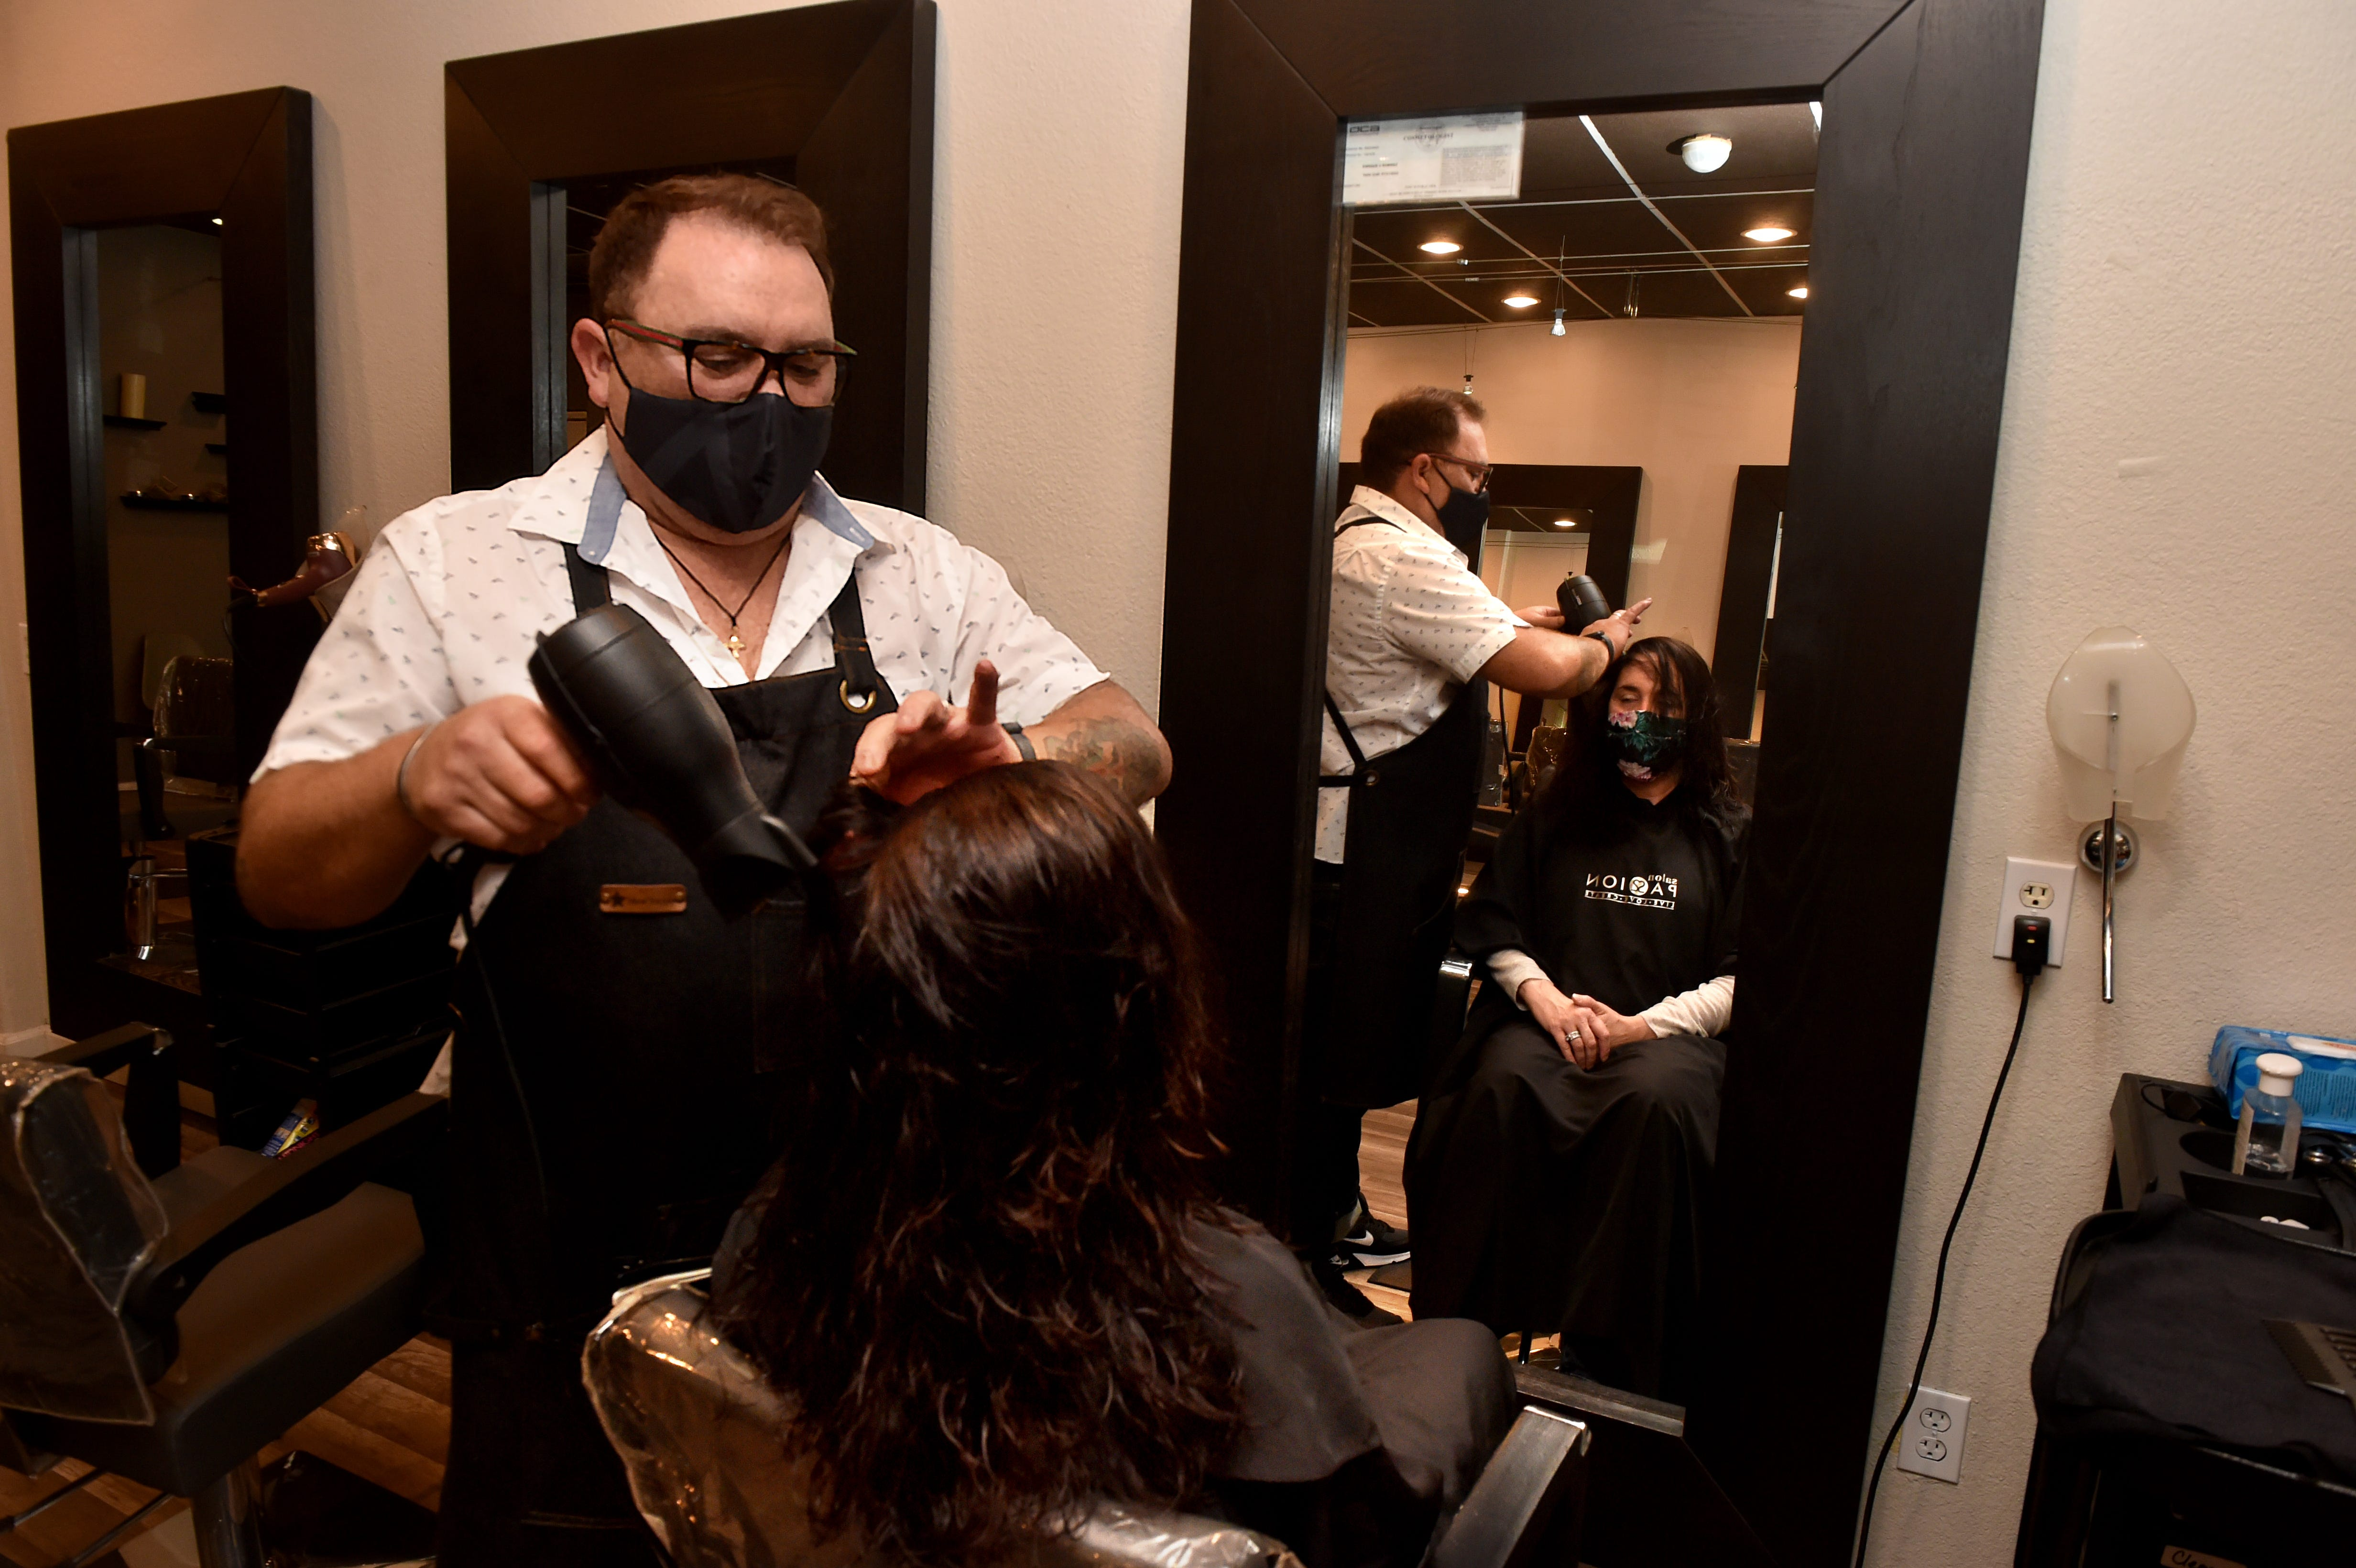 Enrique Ramirez, owner of Salon Passion in Camarillo, styles the hair of Leslie Kaplan on Wednesday, Feb. 24, 2021, as Ramirez and his staff work to keep the business going through the pandemic. After so many ups and downs in 2020, the salon owner nearly closed his business for good but now expects to stay open as more people get vaccinated.